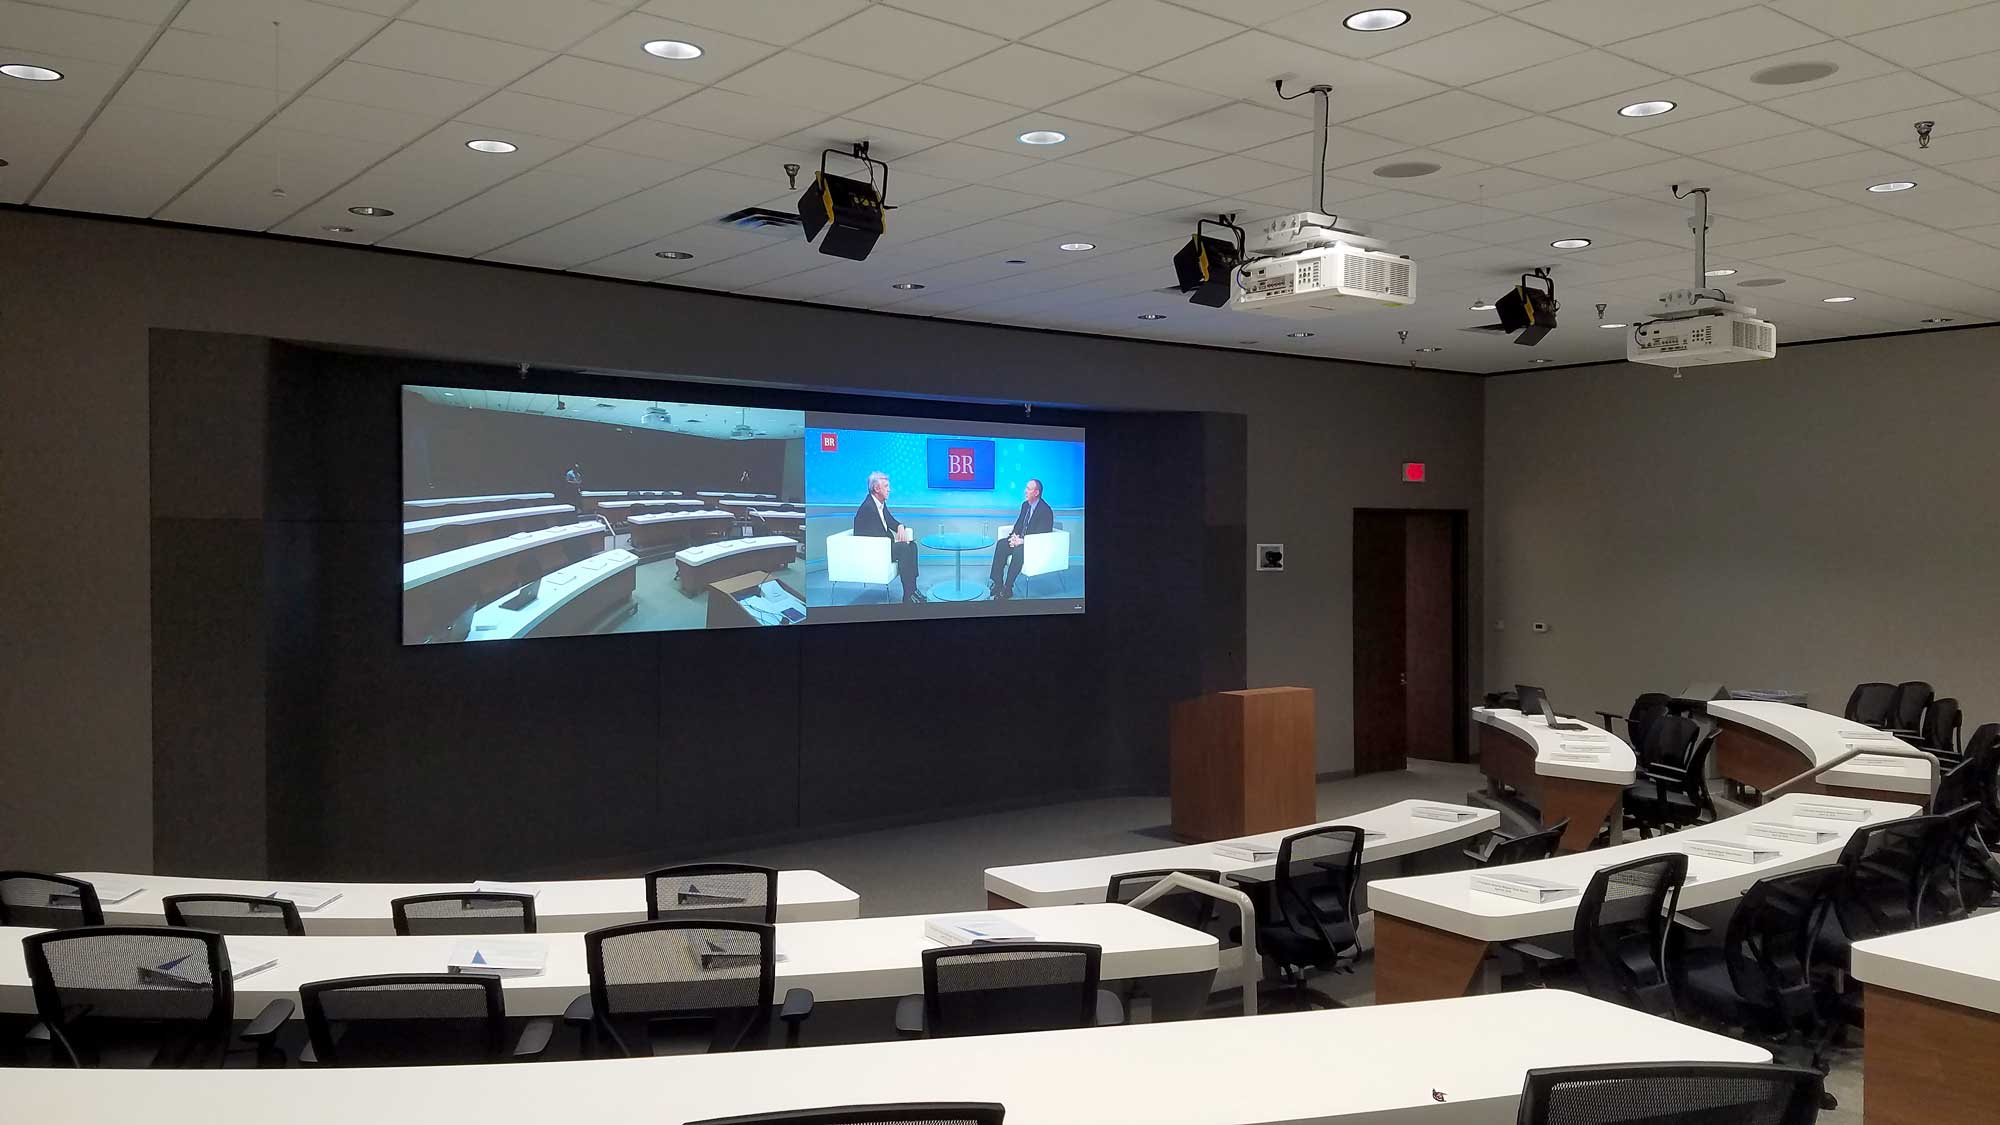 Emerson video conferencing and collaboration center audio speakers and video projection system